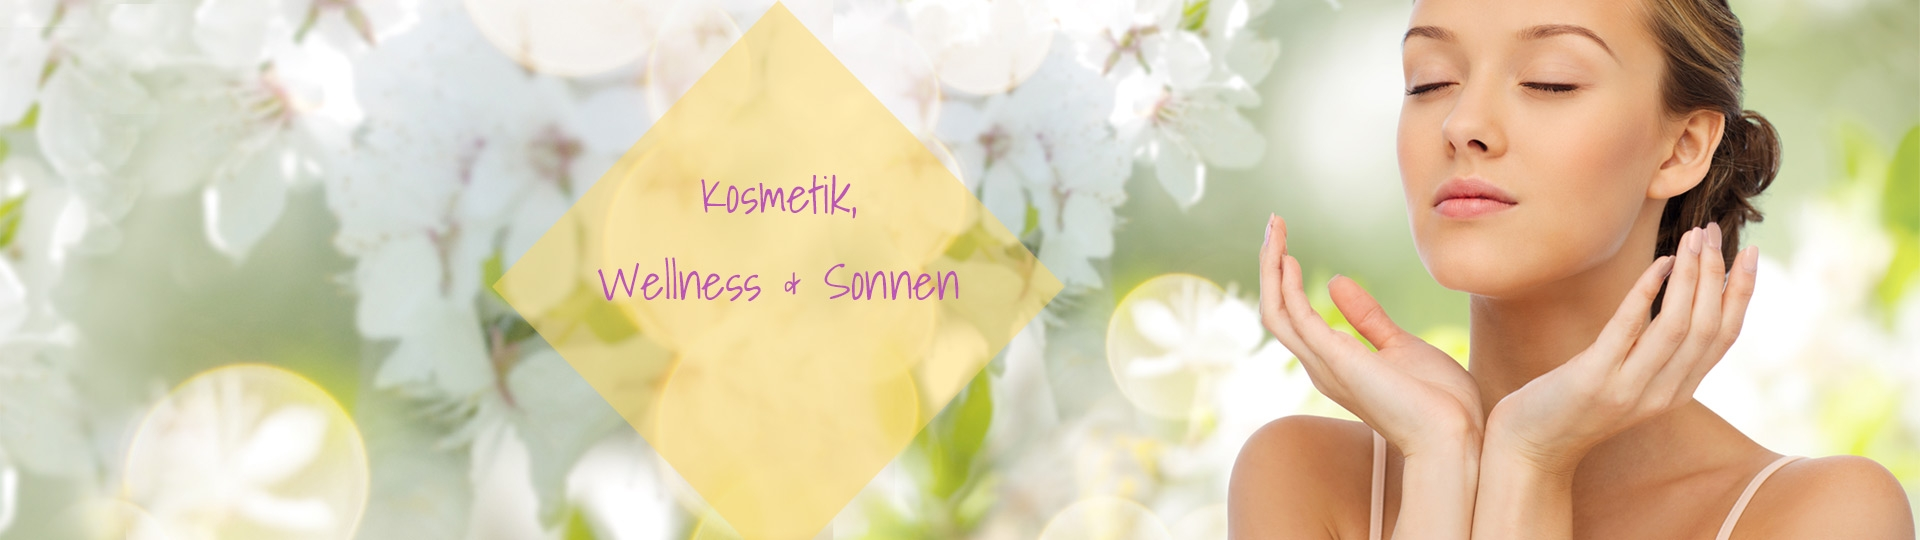 /leistungen/nails/item/44-kosmetik-wellness-sonnen-slider1.html